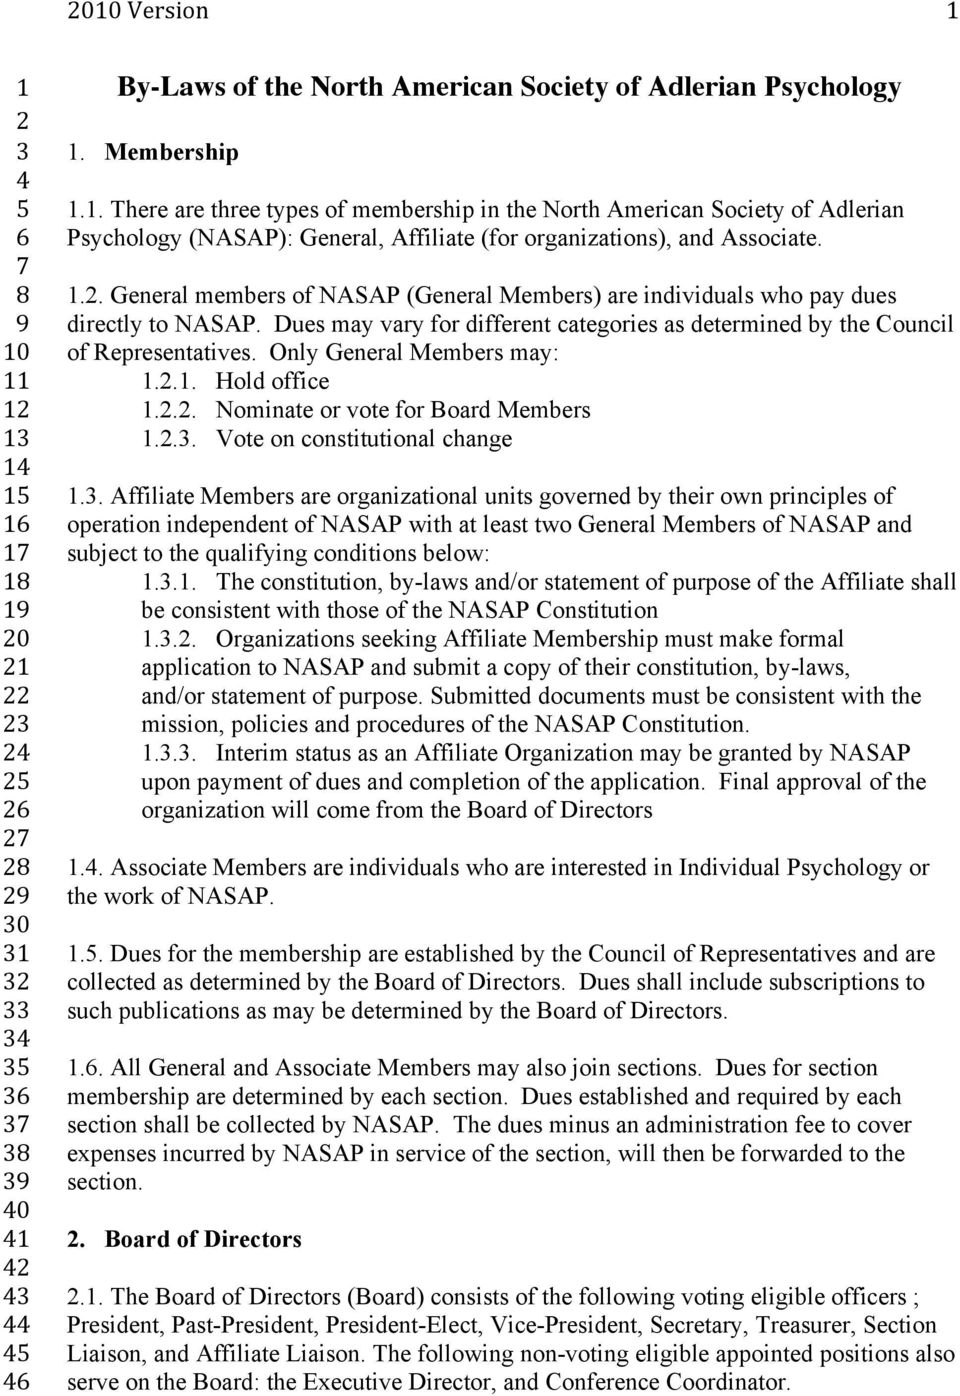 .. General members of NASAP (General Members) are individuals who pay dues directly to NASAP. Dues may vary for different categories as determined by the Council of Representatives.